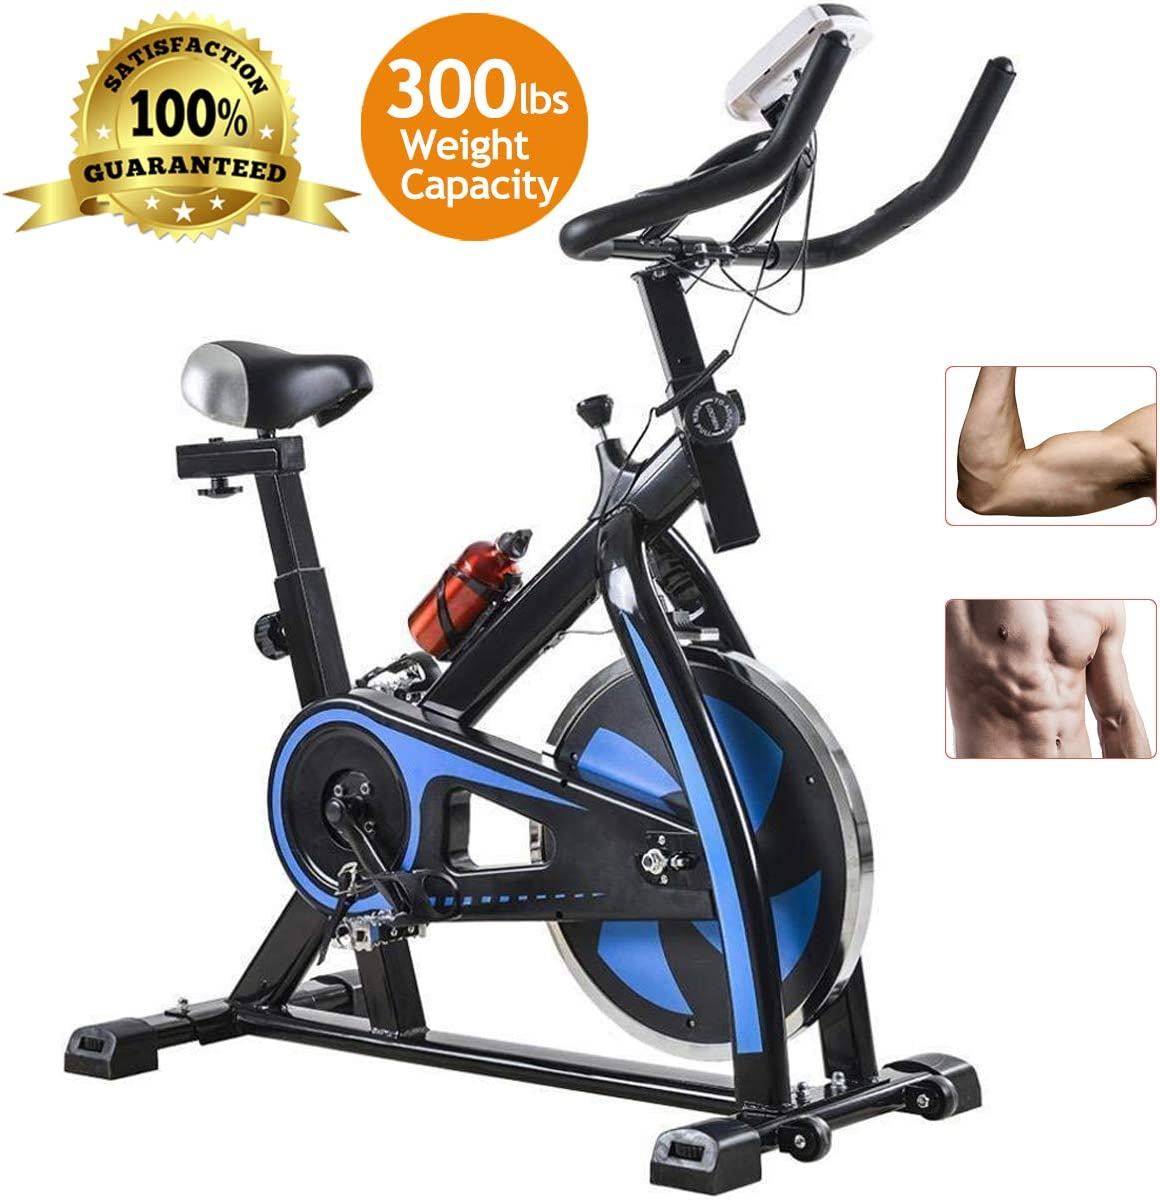 Exercise Bike Cycling Bike Indoor Cycling Spin Bike Bicycle Cardio Fitness Cycle Trainer Heart Pulse w LED Display Exercise Bikes Stationary Indoor